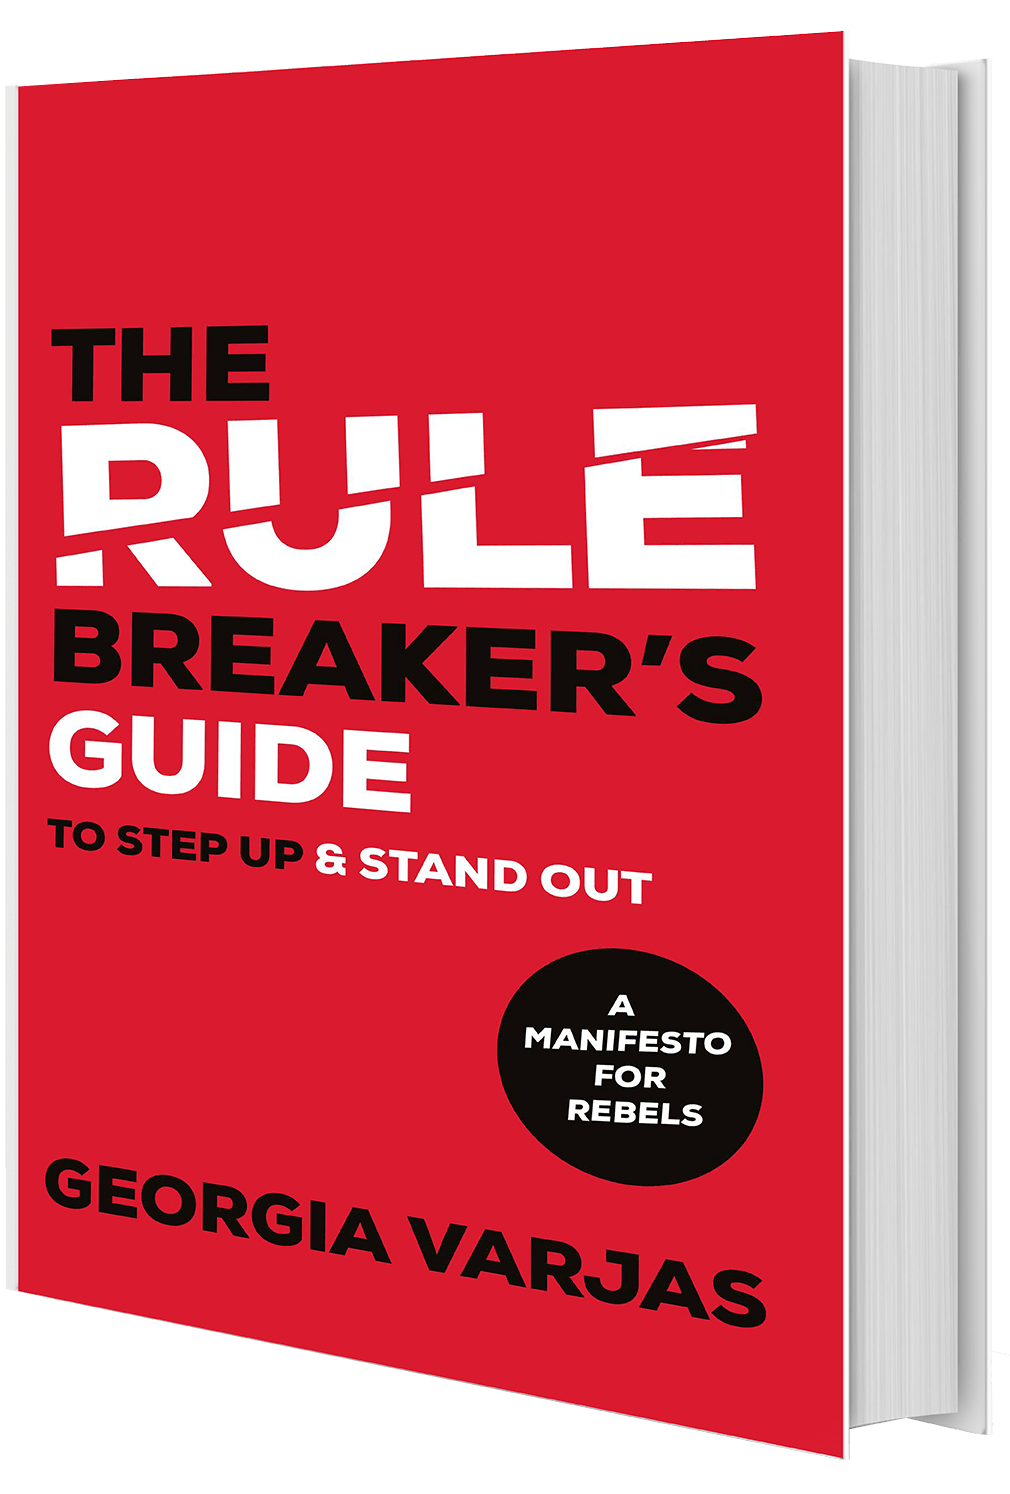 The Rule Breakers Guide to Step Up and Stand Out by Georgia Varjas